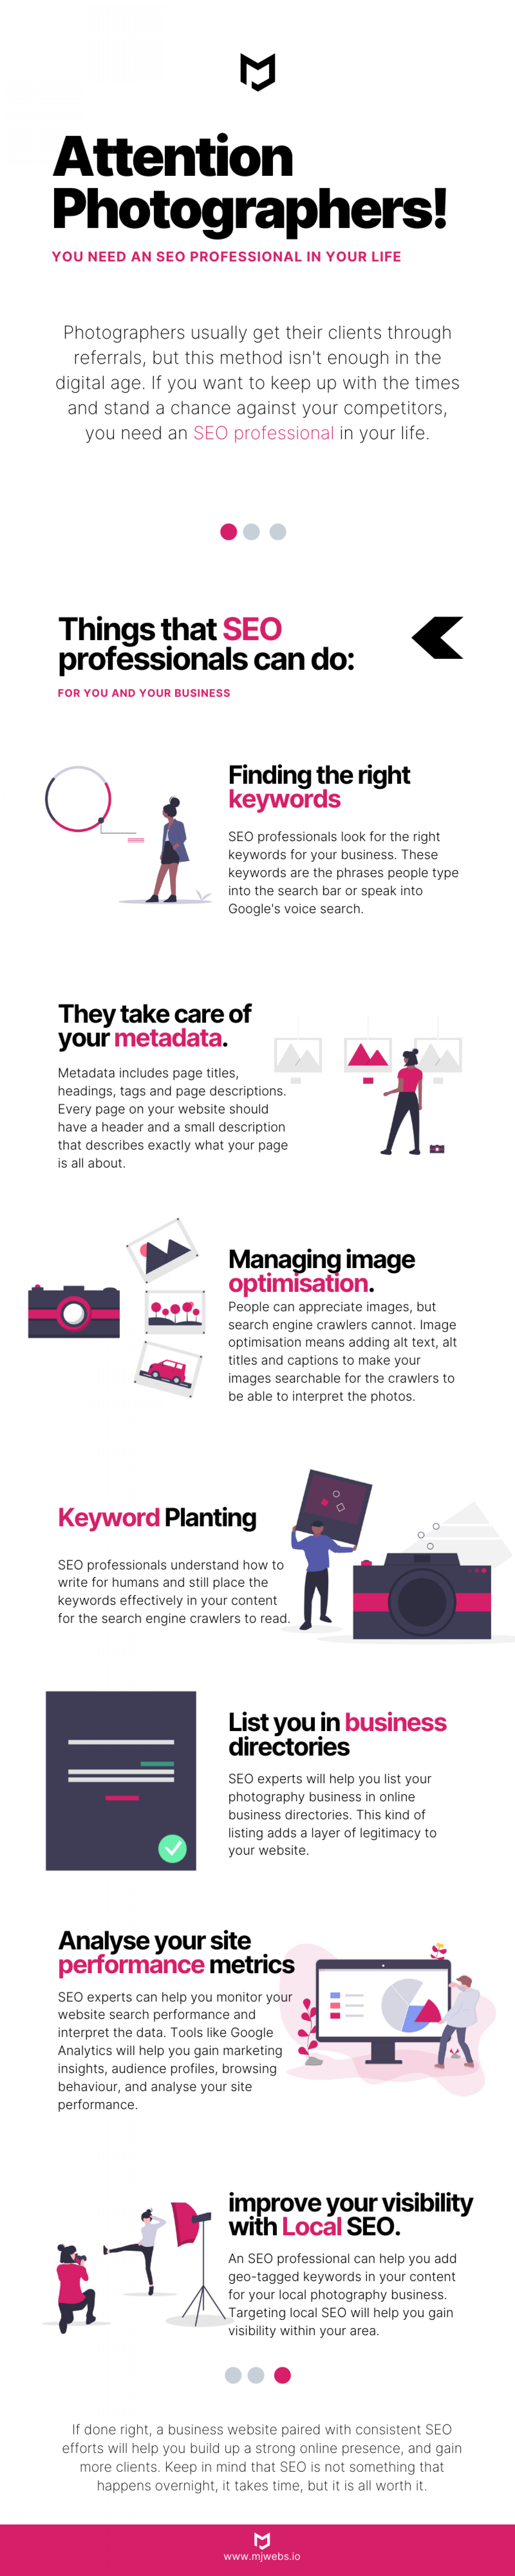 The Importance of SEO For Photographers Infographic